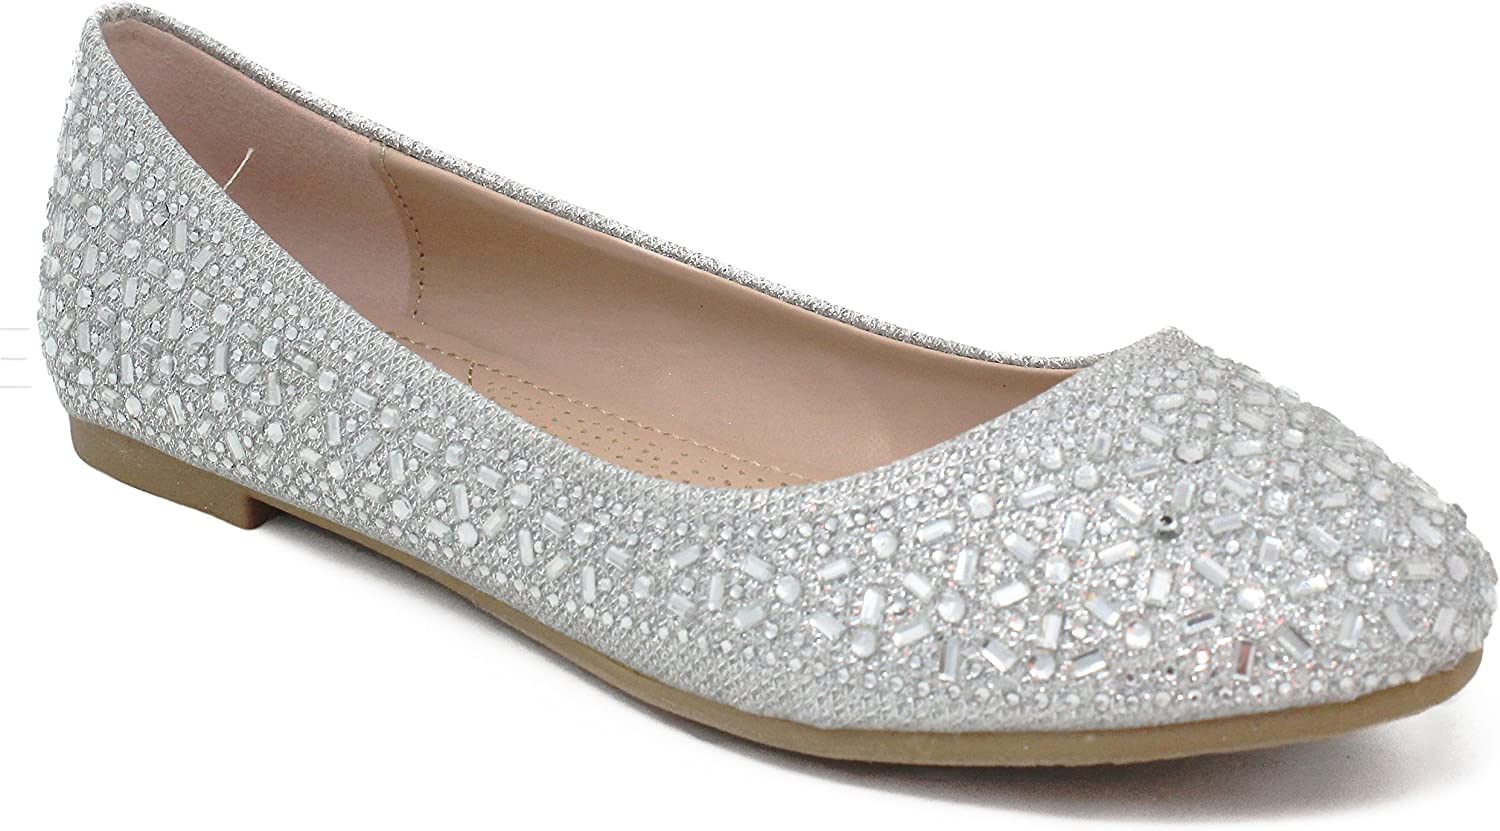 MVE Shoes Womens Comfortable Flats with Soft Insole